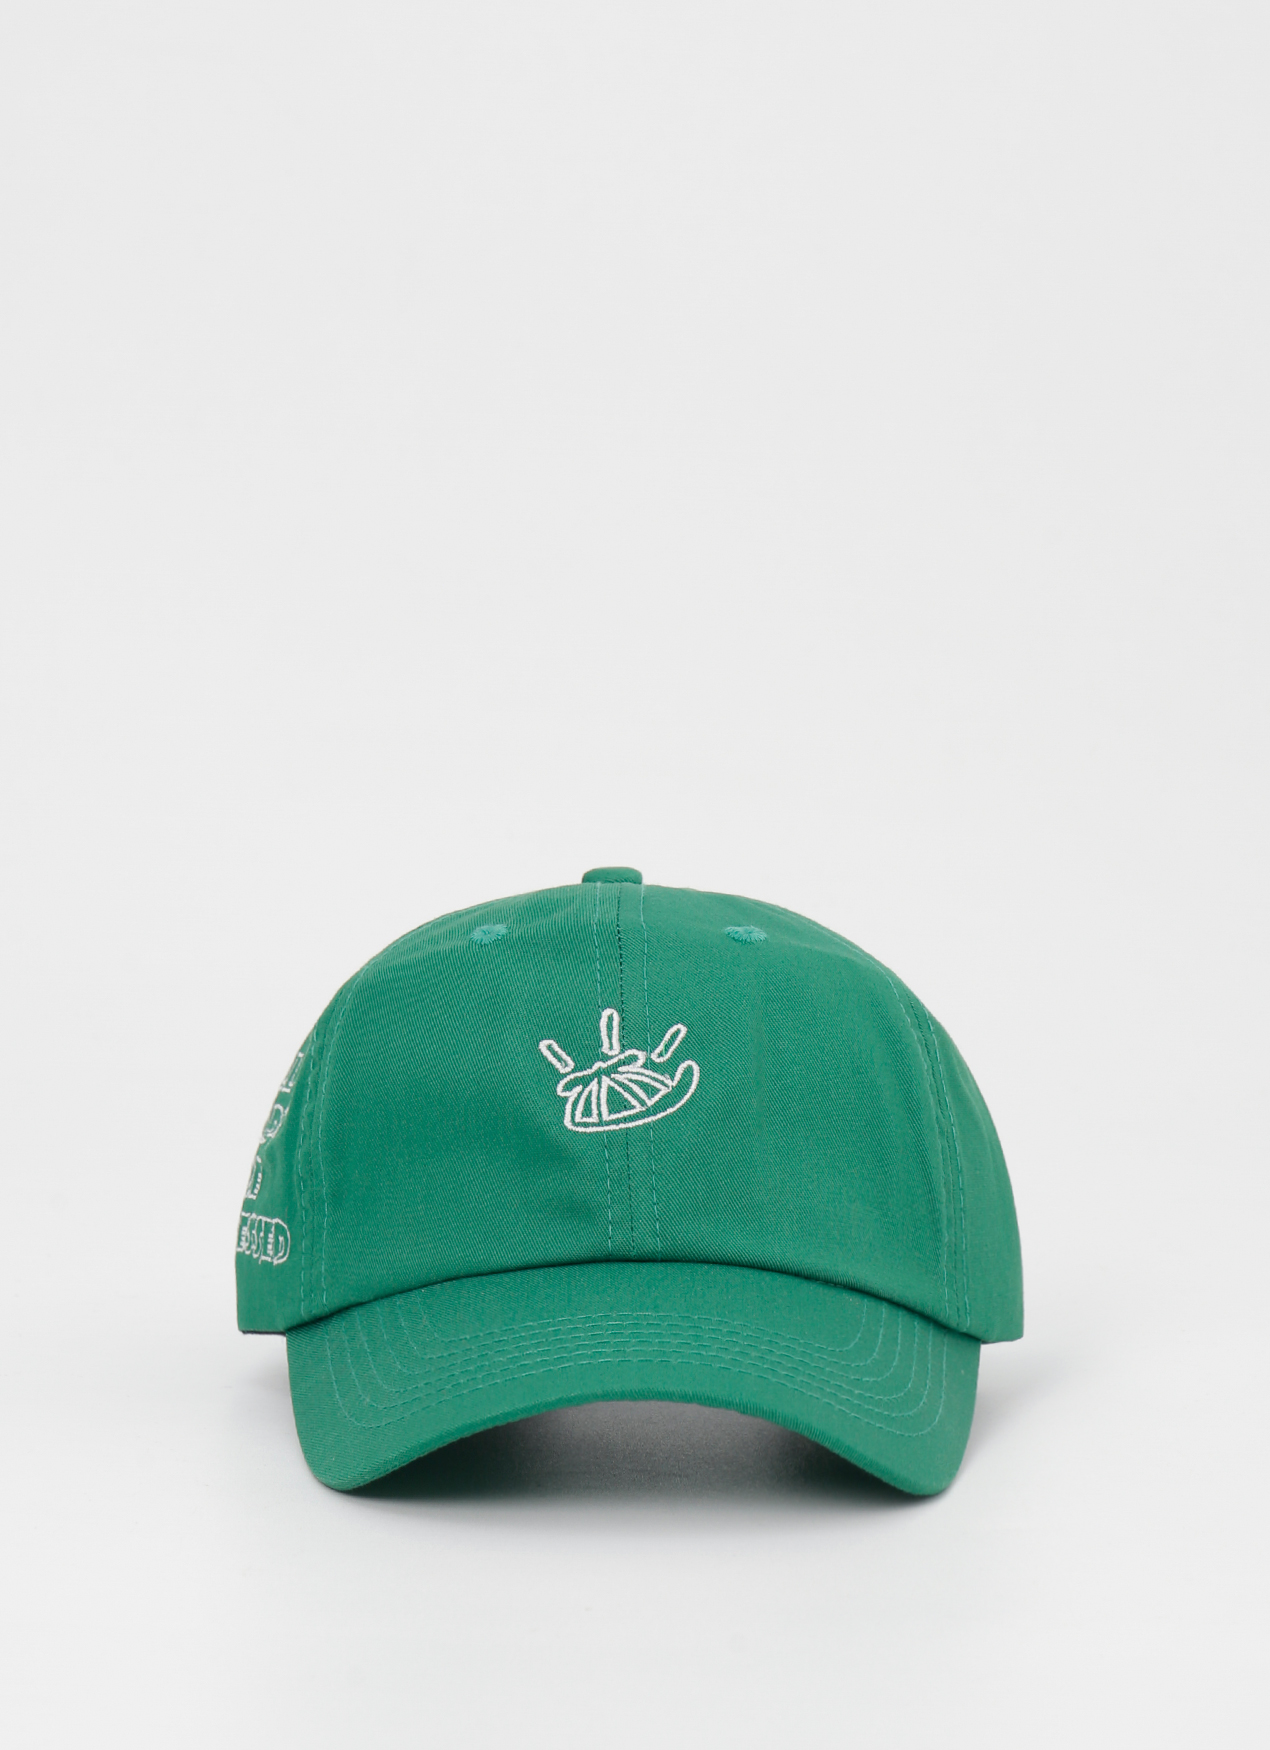 a7508d28c24 Buy Original Cool Caps Green Acab Cap at Indonesia